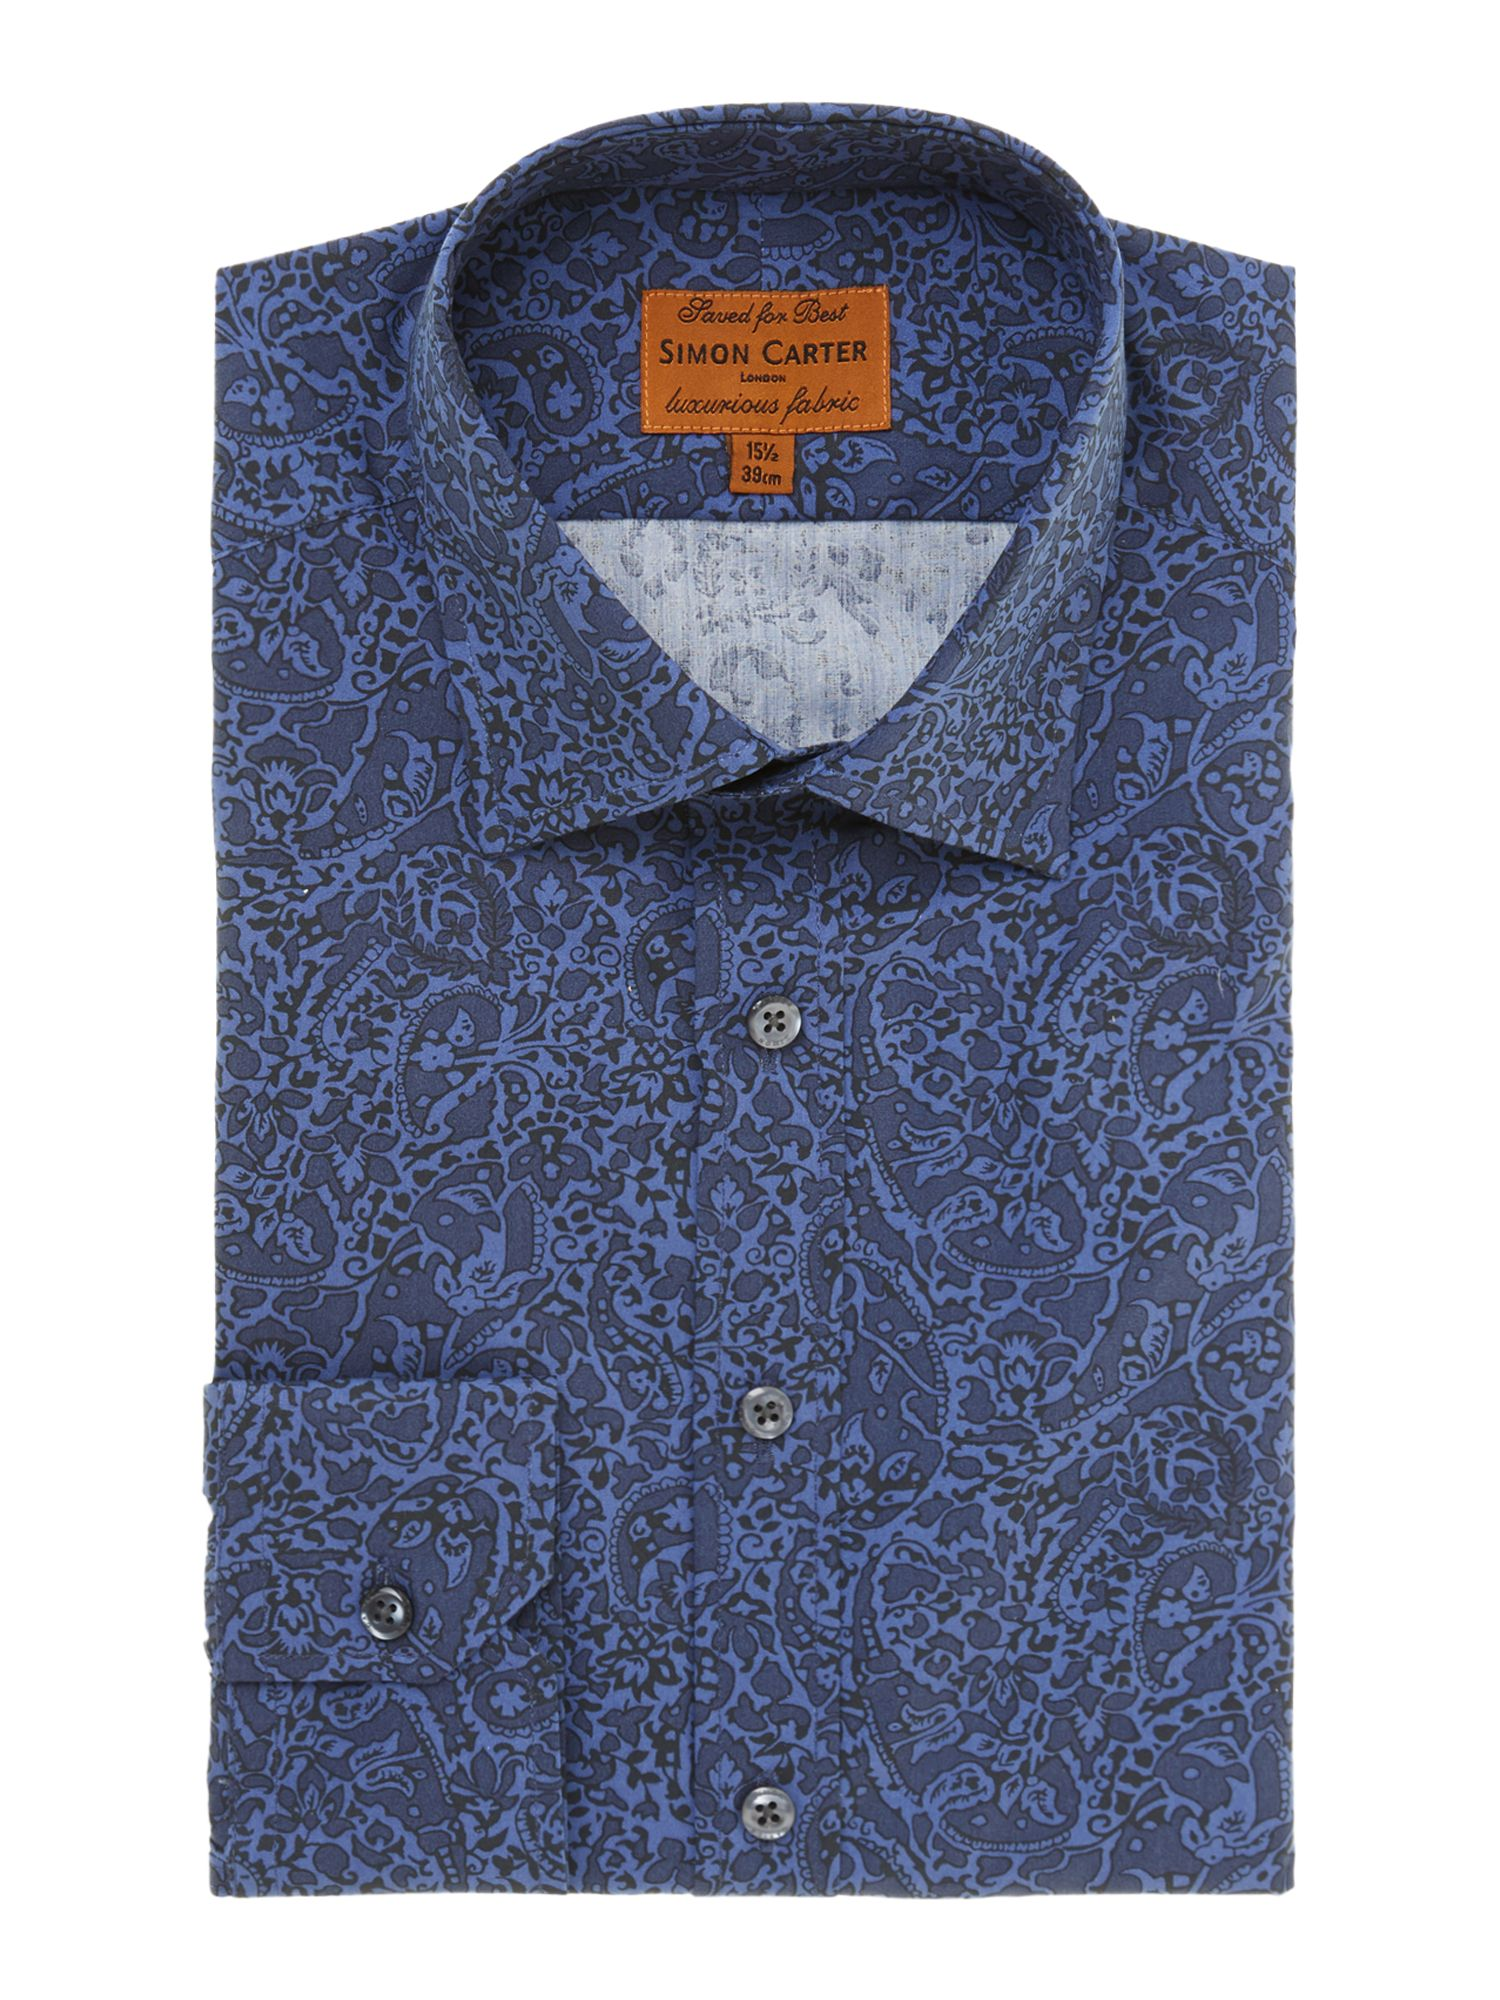 Paisley regular fit shirt